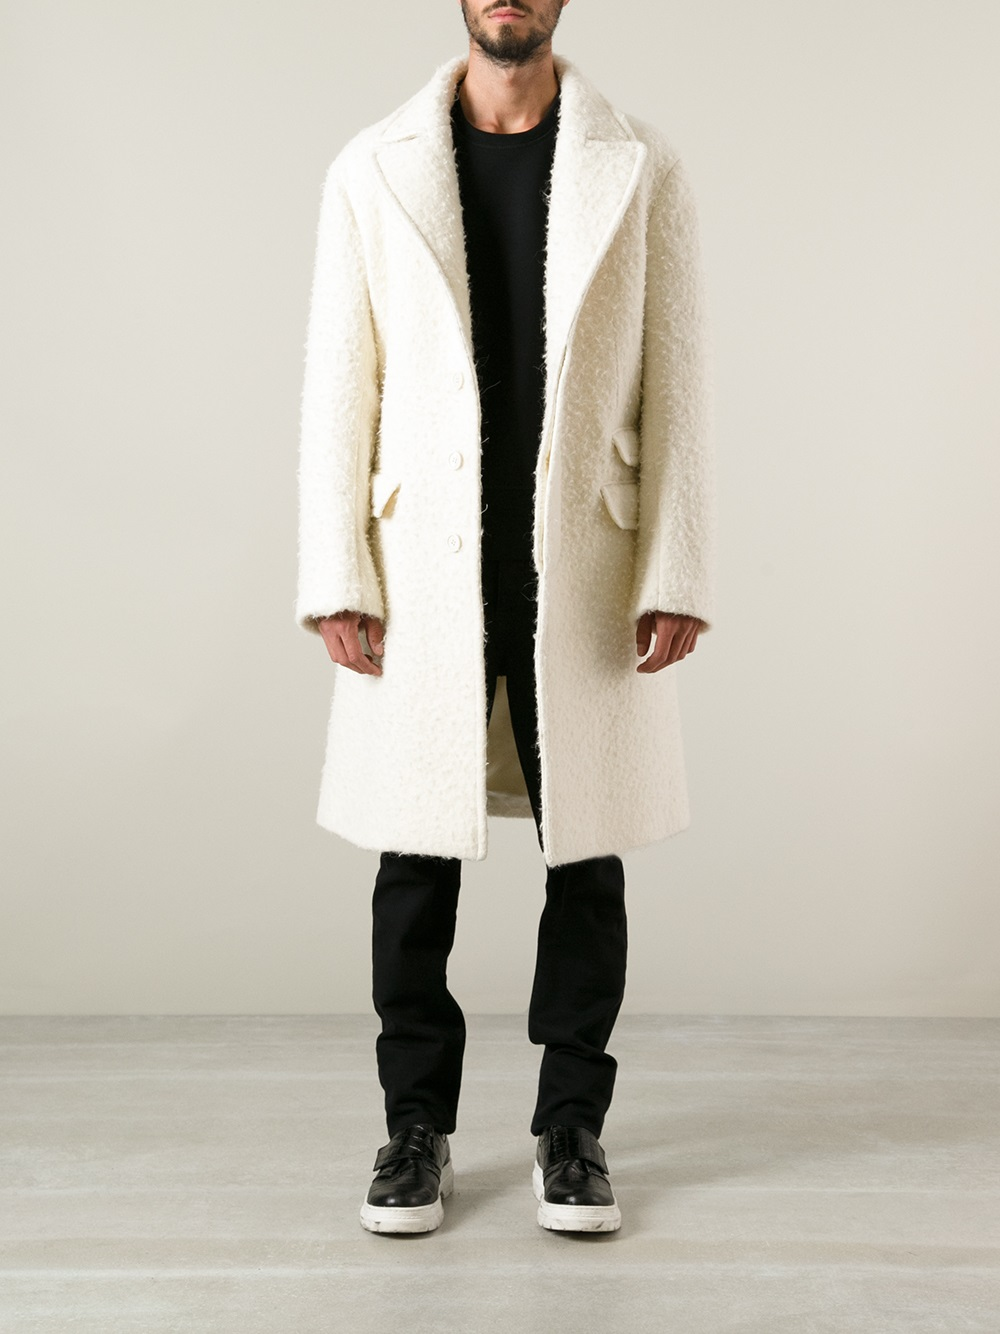 single men in barrett Buy neil barrett single breasted shearling at outlet price on glamood the best men neil barrett single breasted shearling offer for your classy wardrobe.